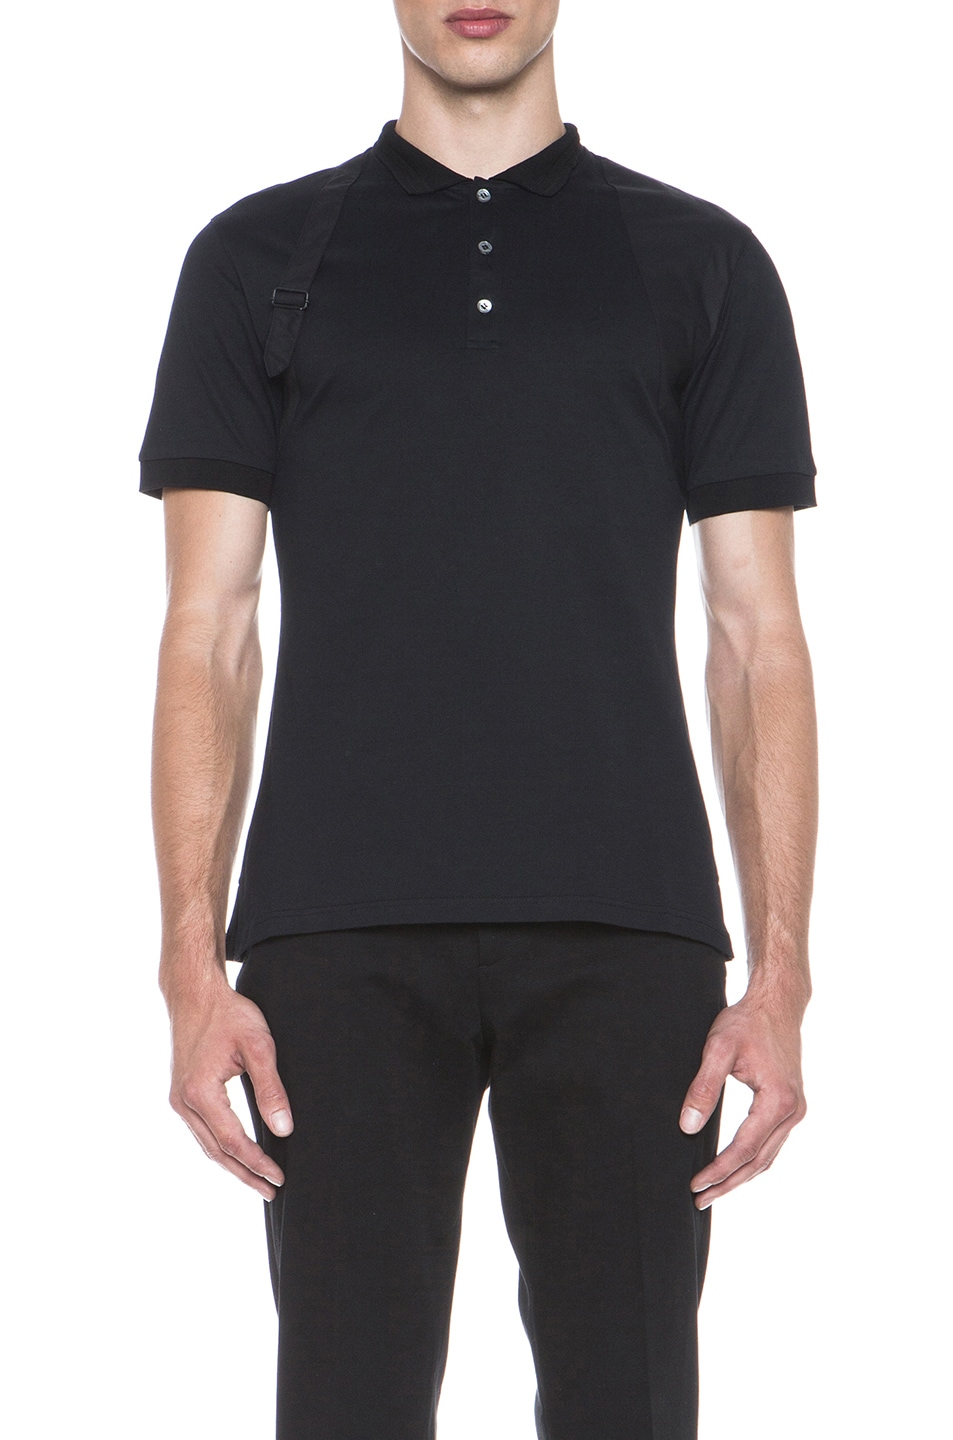 8f26f6d25 Image 1 of Alexander McQueen Harness Polo in Black